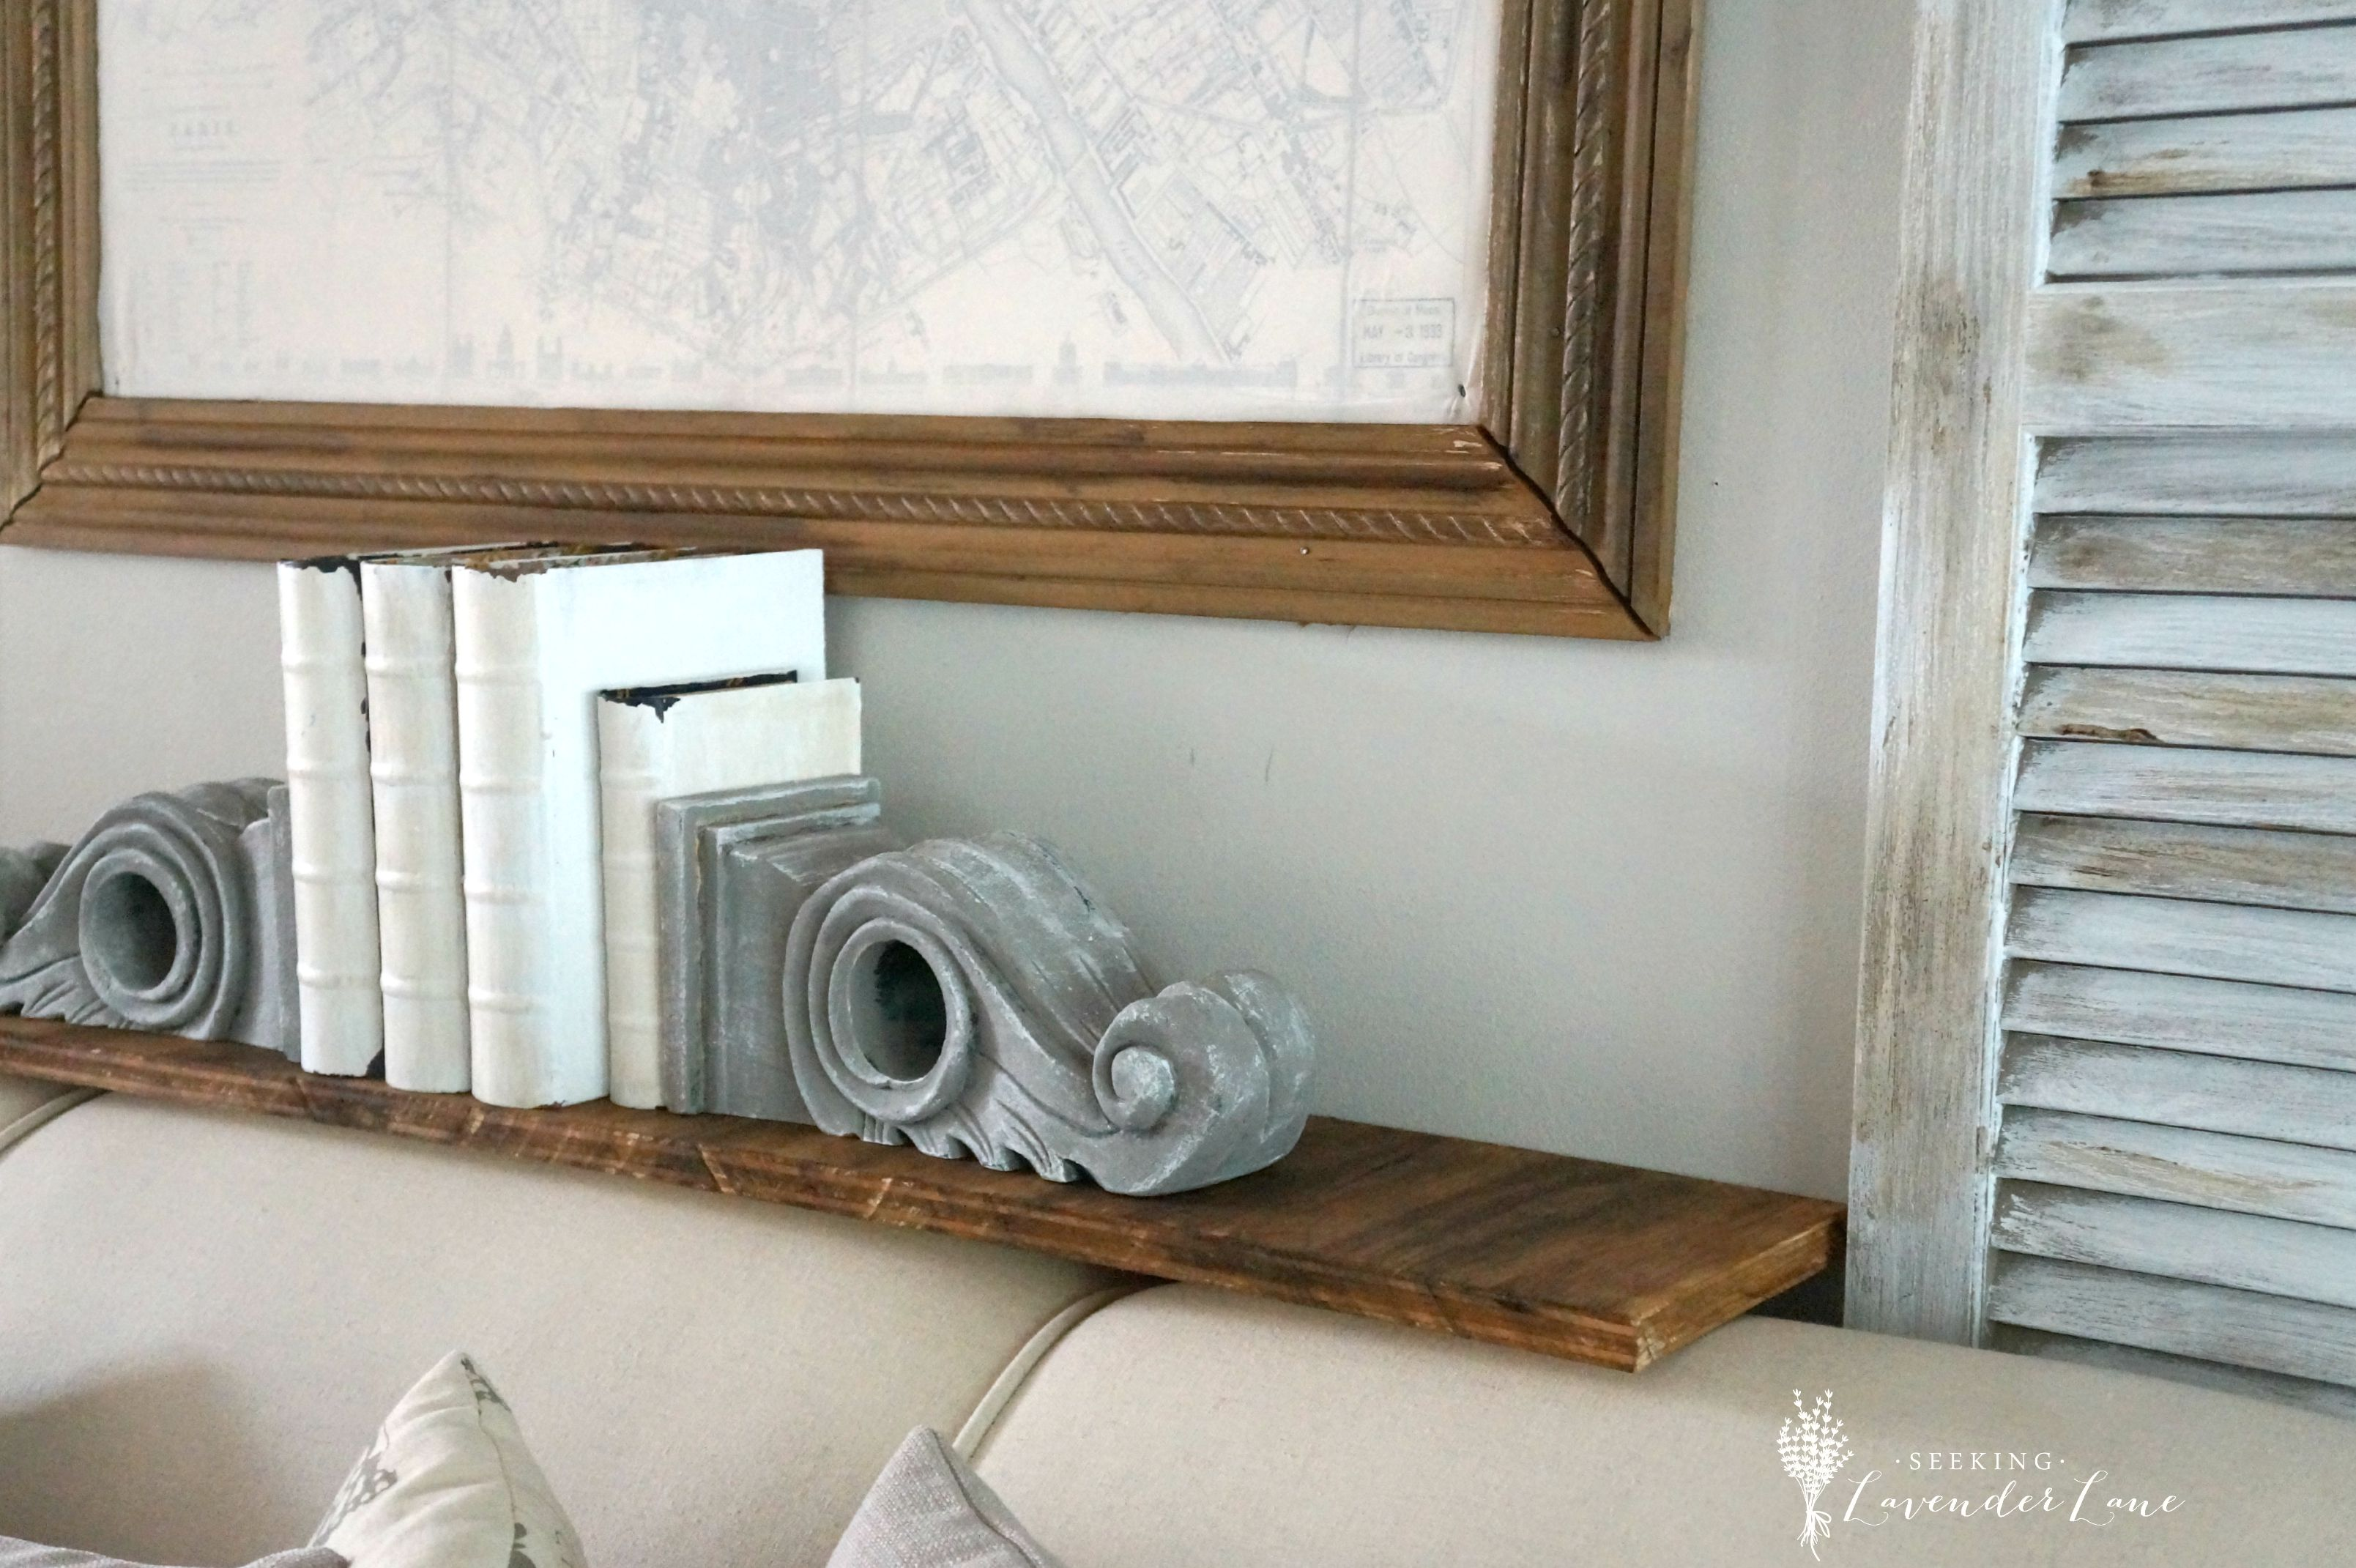 Rustic Shelf And Shutters Above Couch With Wall Shutters